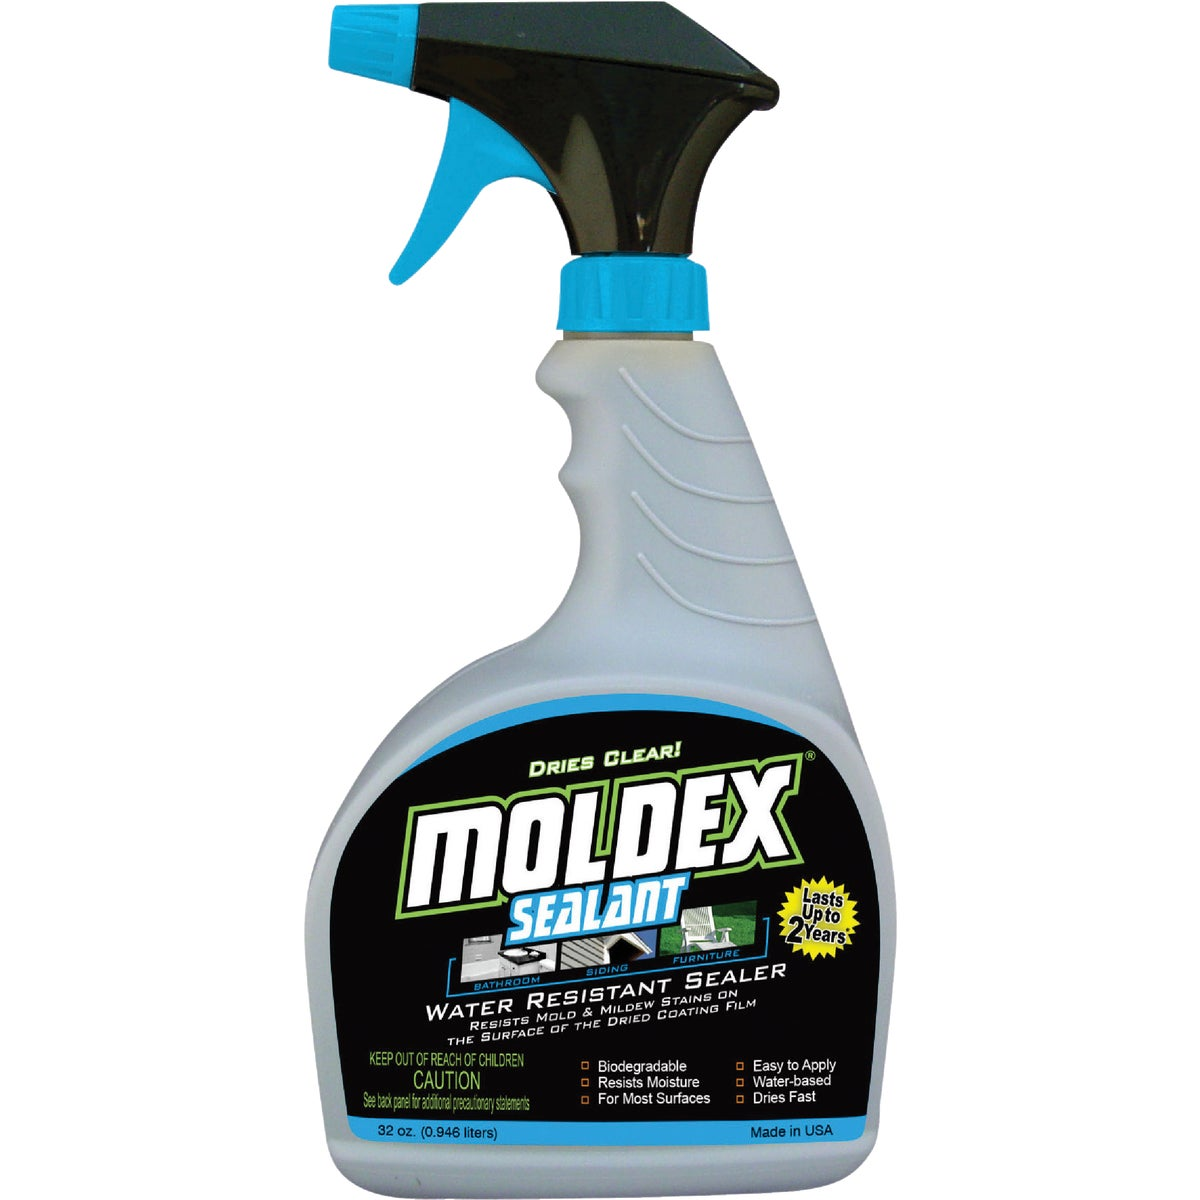 MOLDEX SPRAY PROTECTANT - 5210 by Envirocare Corp